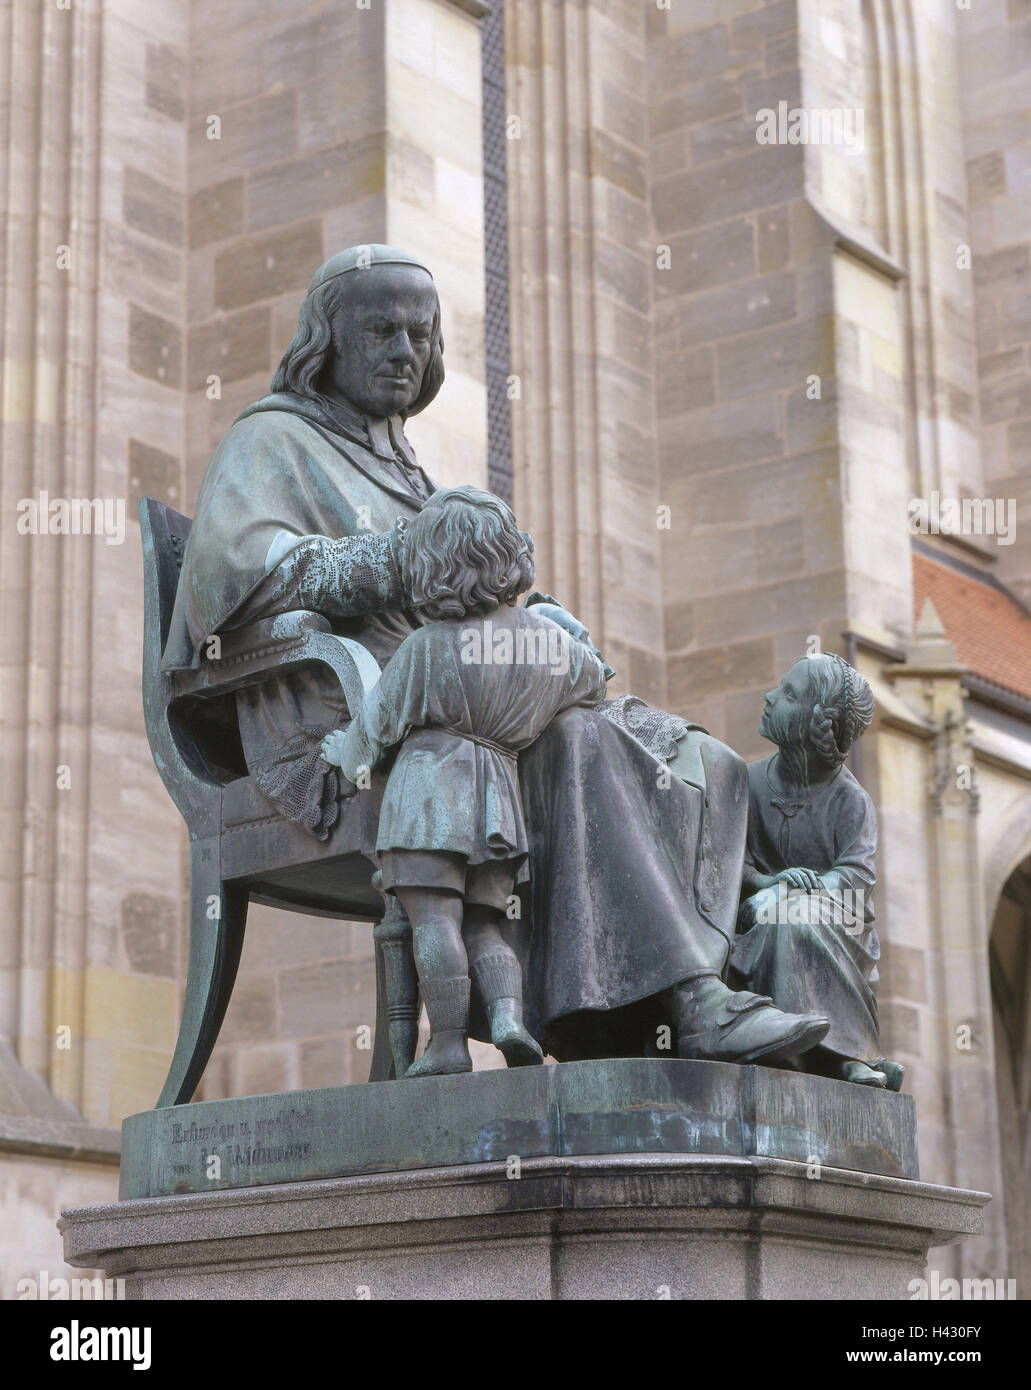 Germany, Bavaria, Central Franconia, Dinkelsbühl, from with Christoph Schmid monument, Europe, Franconia, Münster - Stock Image